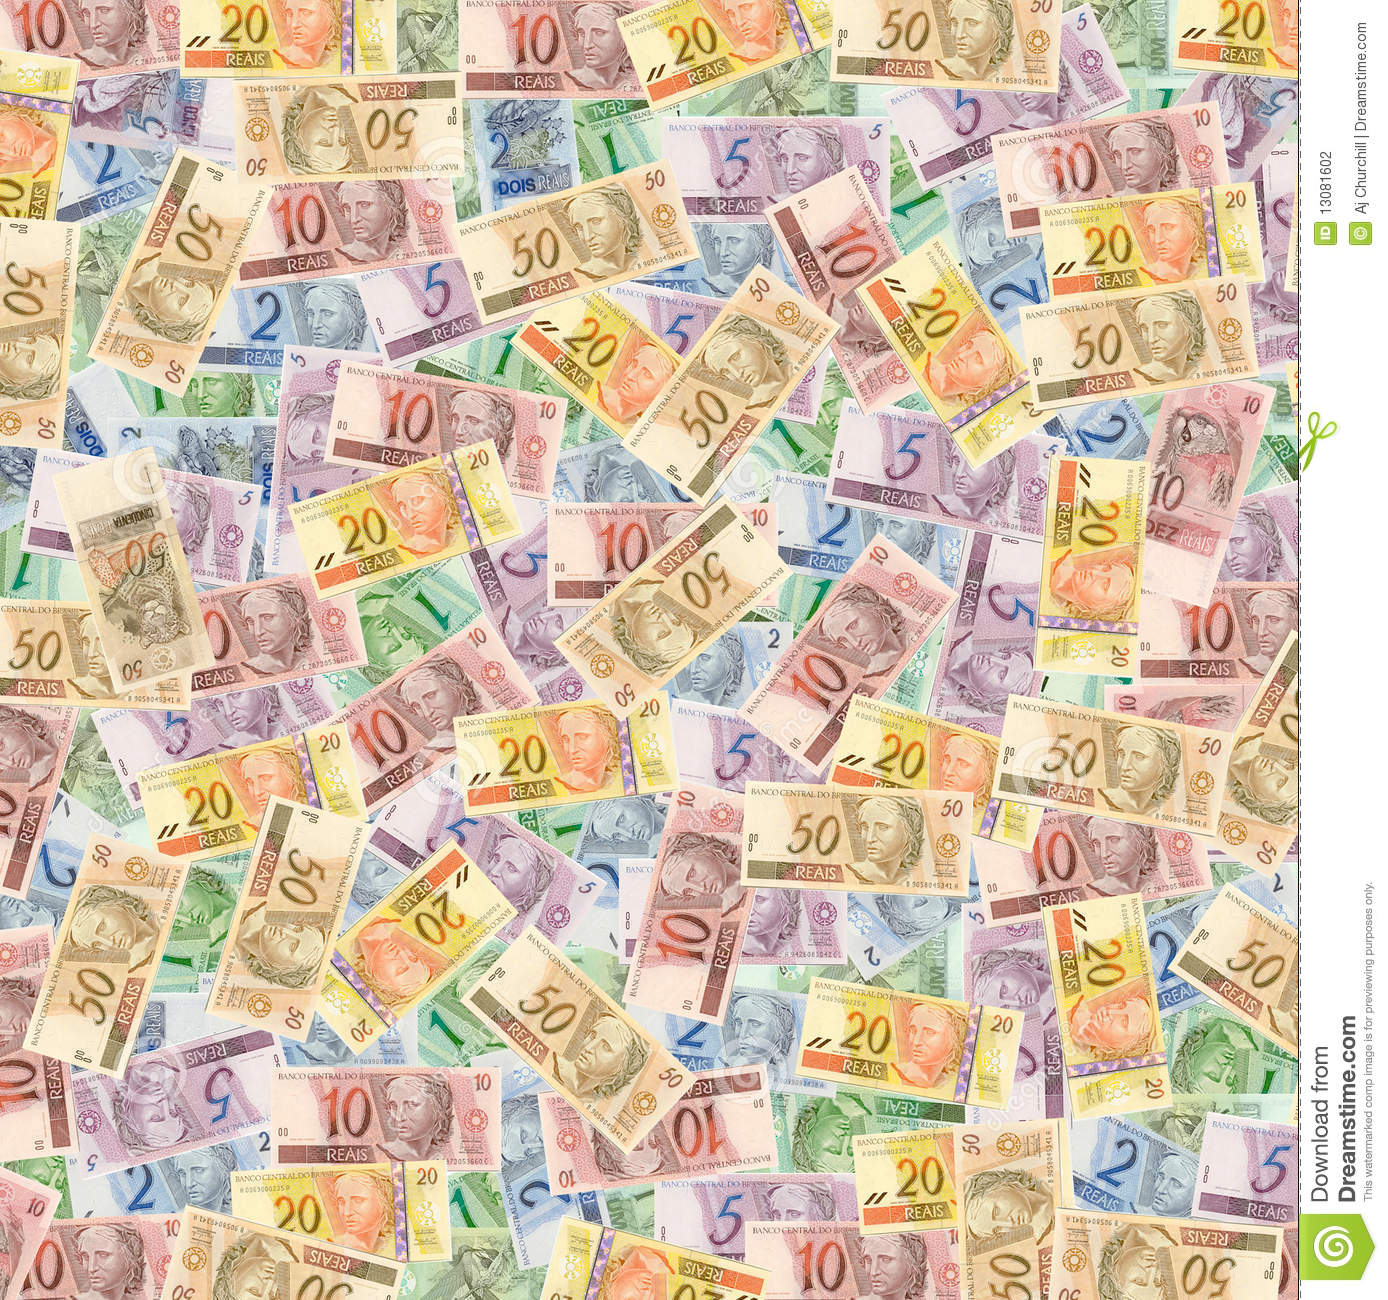 Brazilian Money (Reais) Stock Photography - Image: 13081602